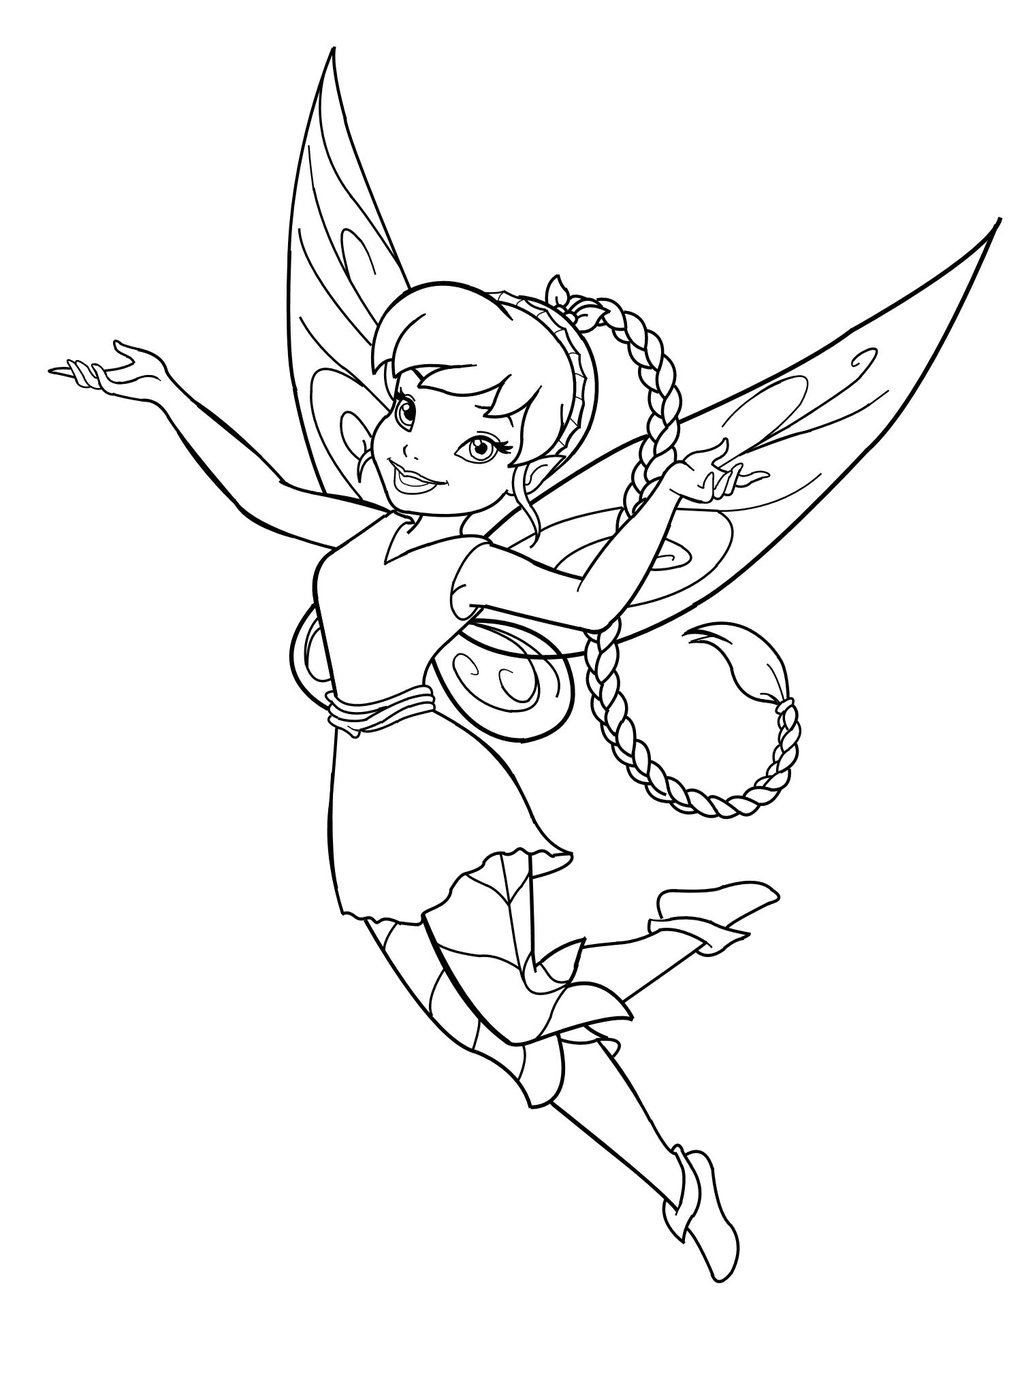 fairy coloring free printable fairy coloring pages for kids coloring fairy 1 1